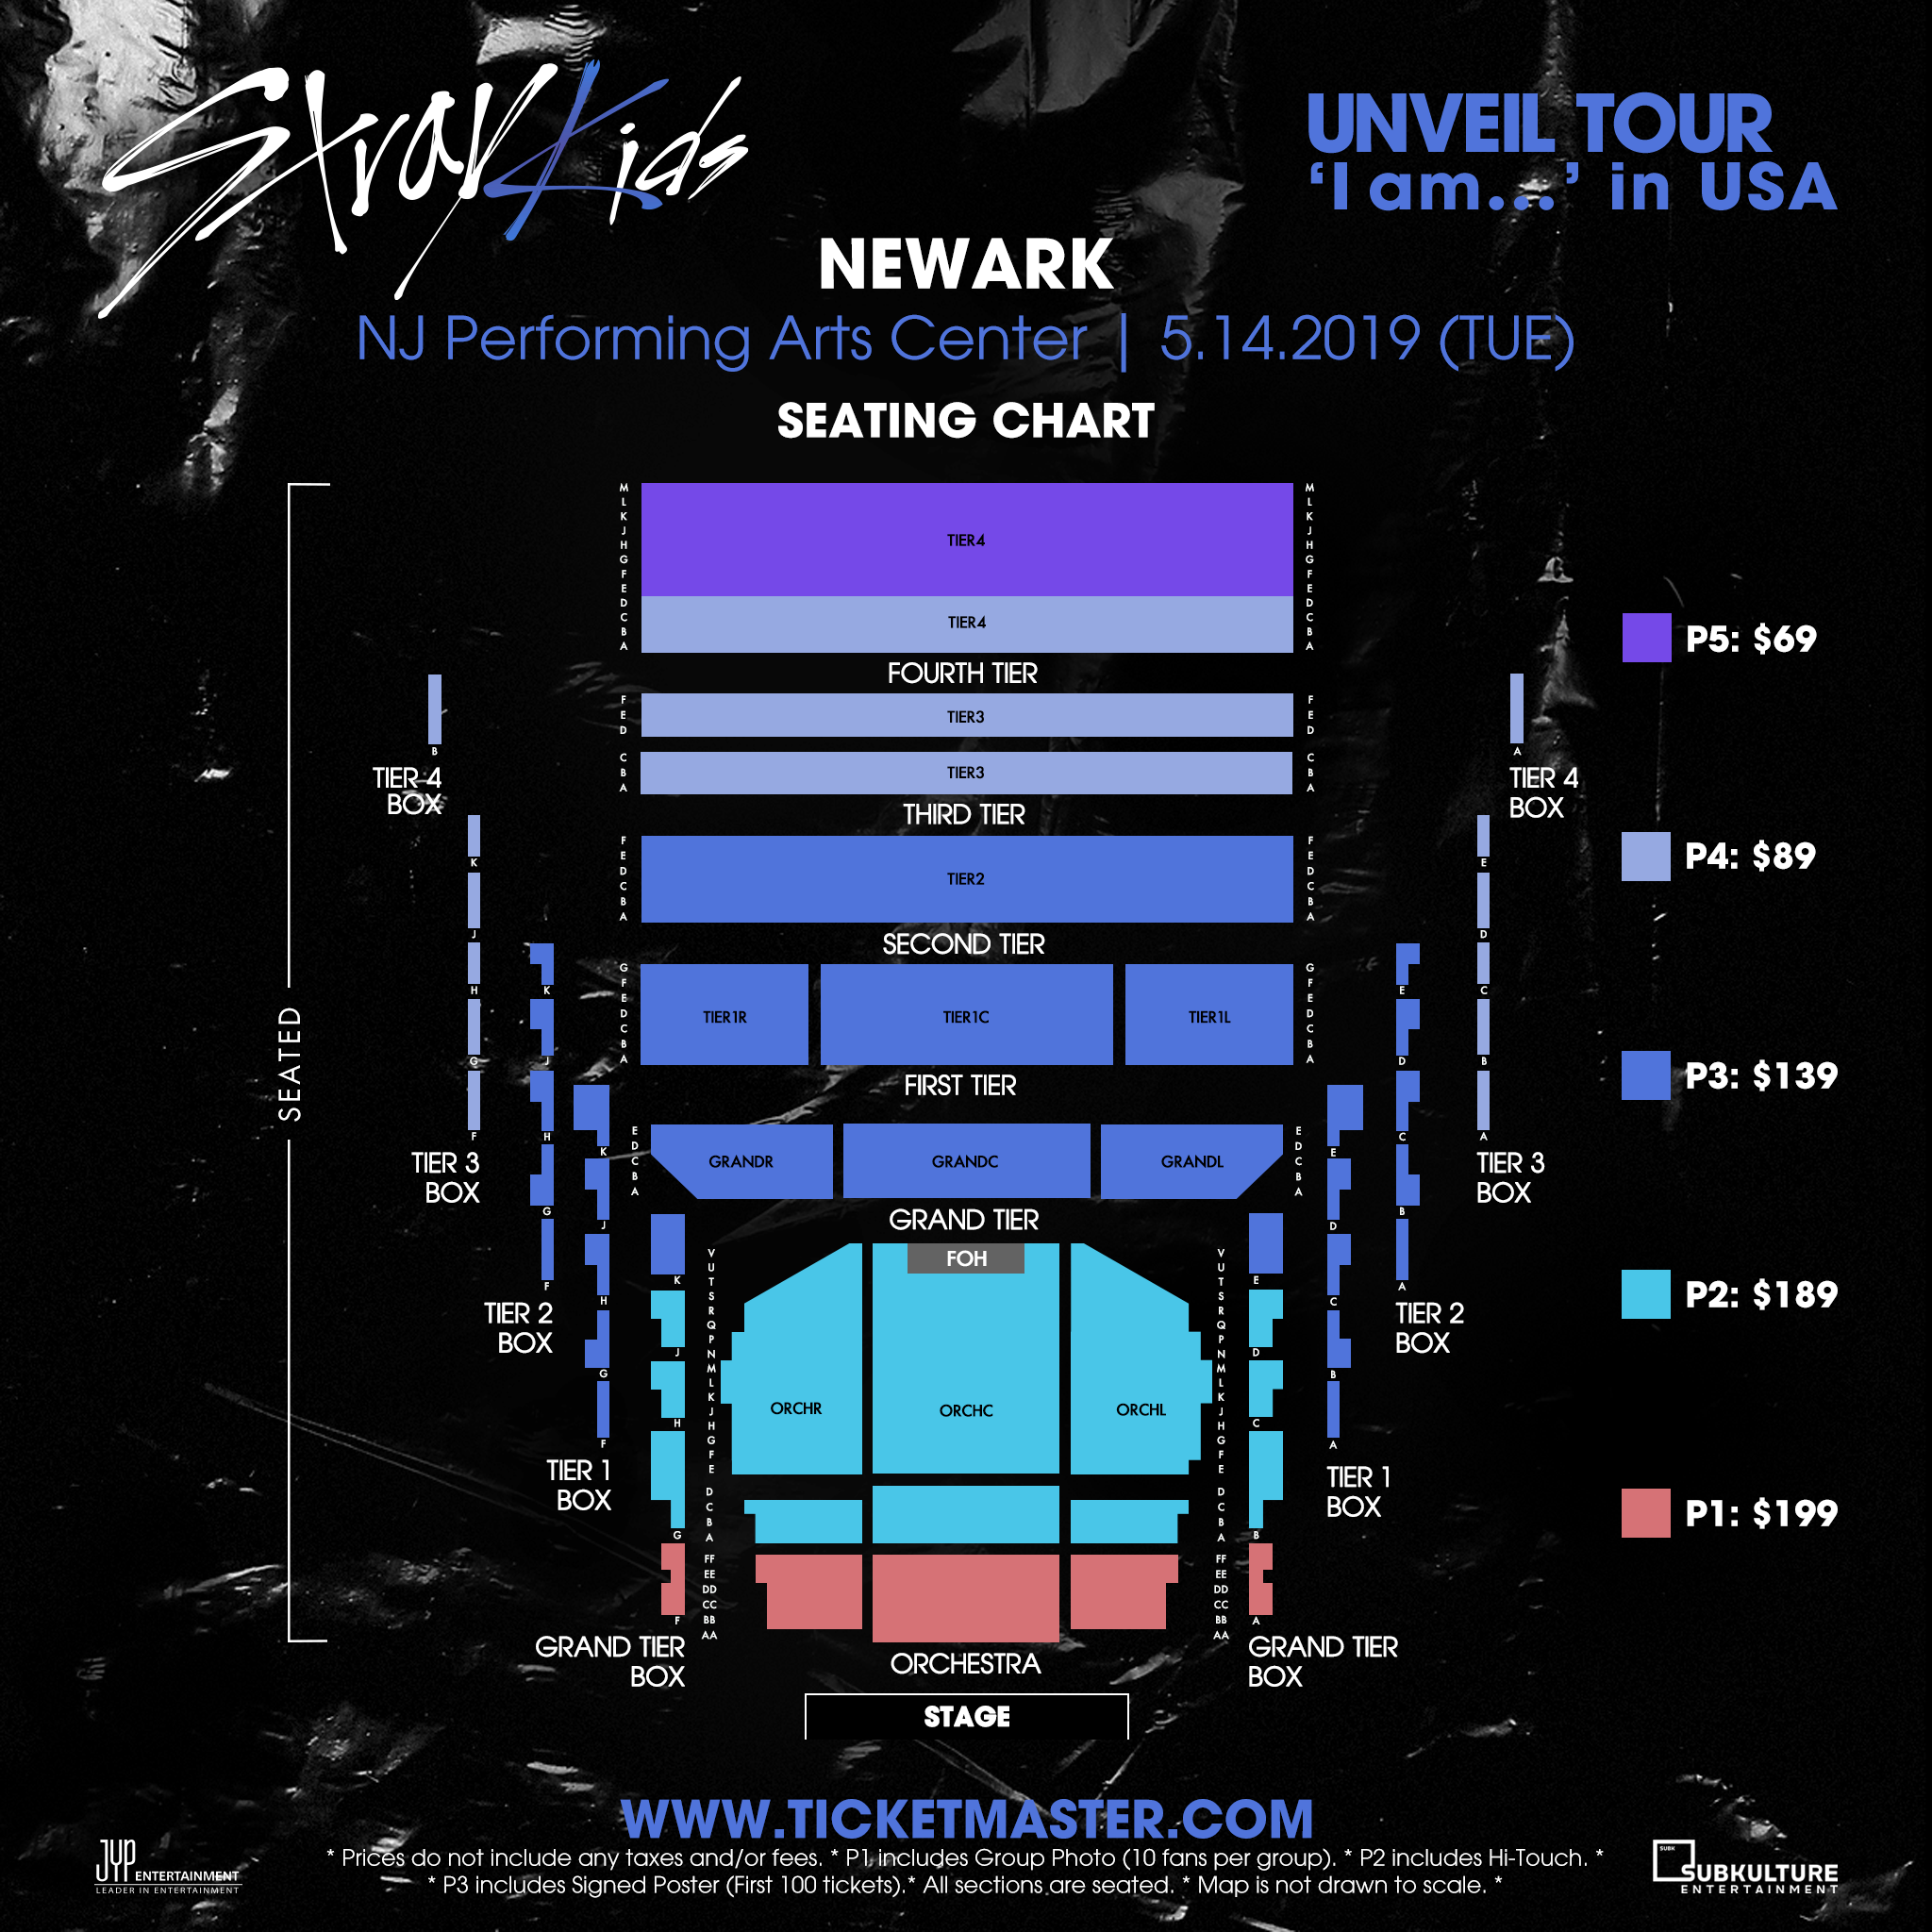 skz-seatingchart-nwk-1.png